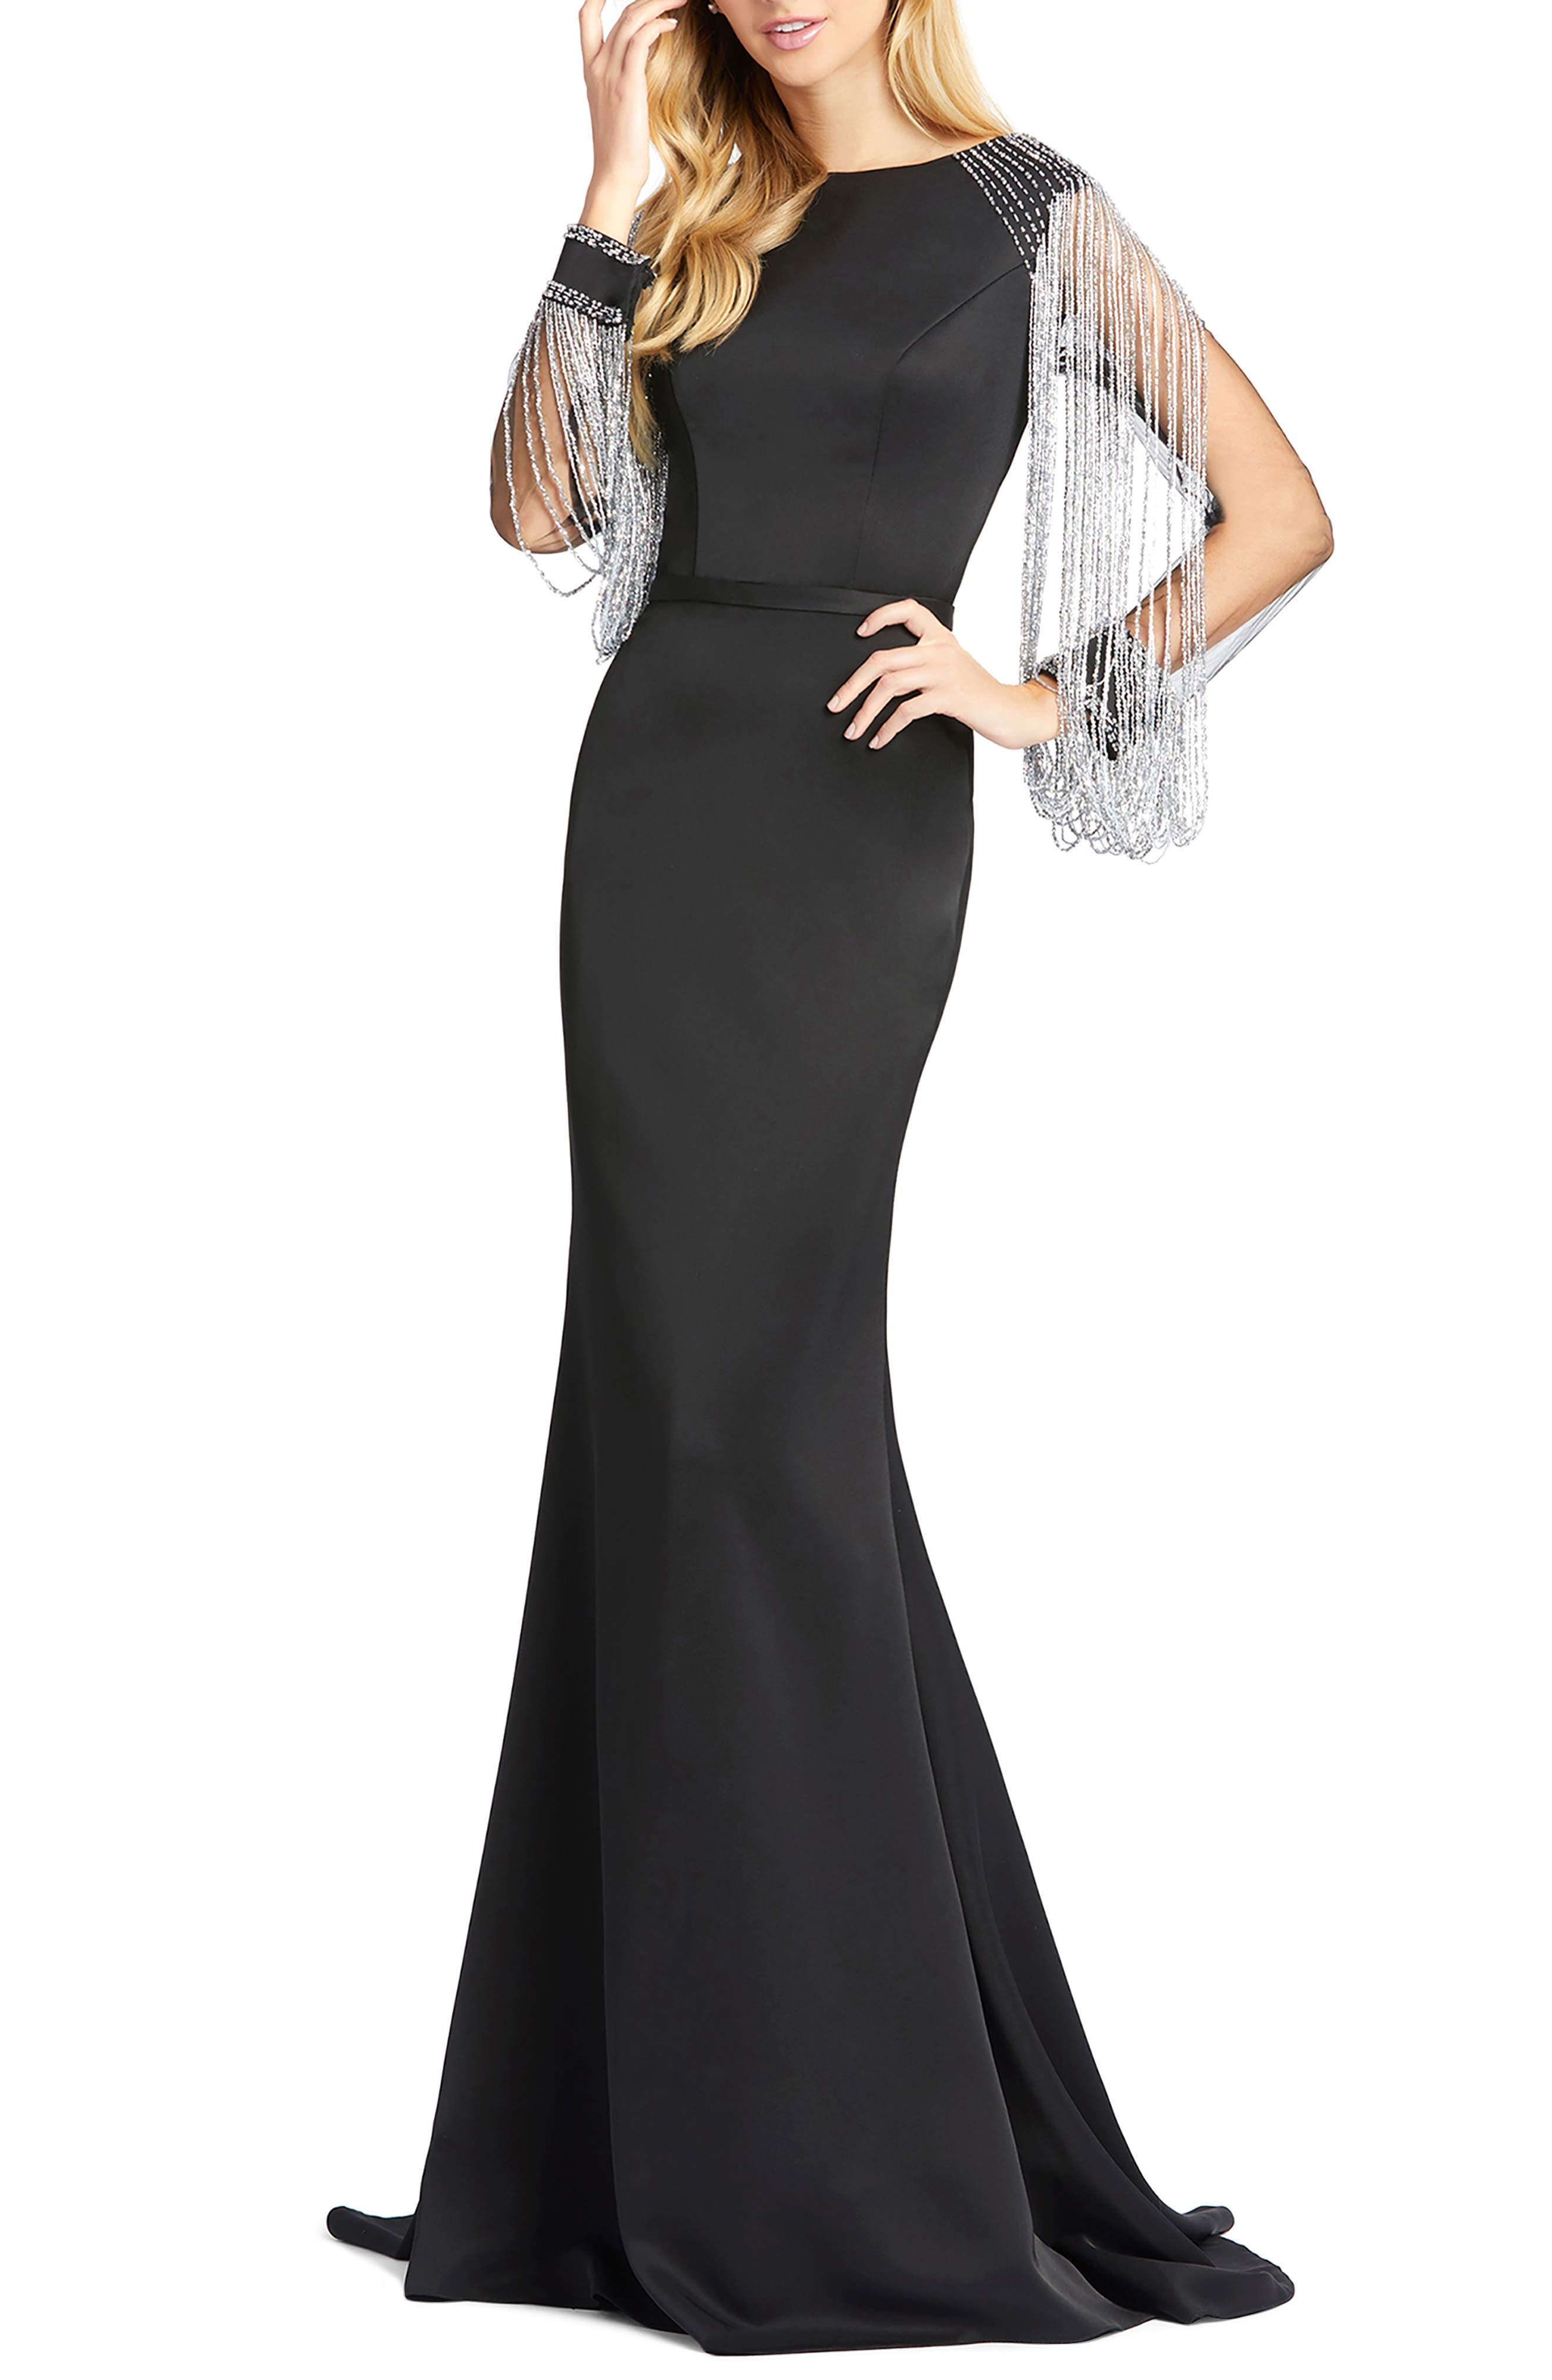 70s Prom, Formal, Evening, Party Dresses Womens MAC Duggal Fringe Sleeve Trumpet Gown $598.00 AT vintagedancer.com